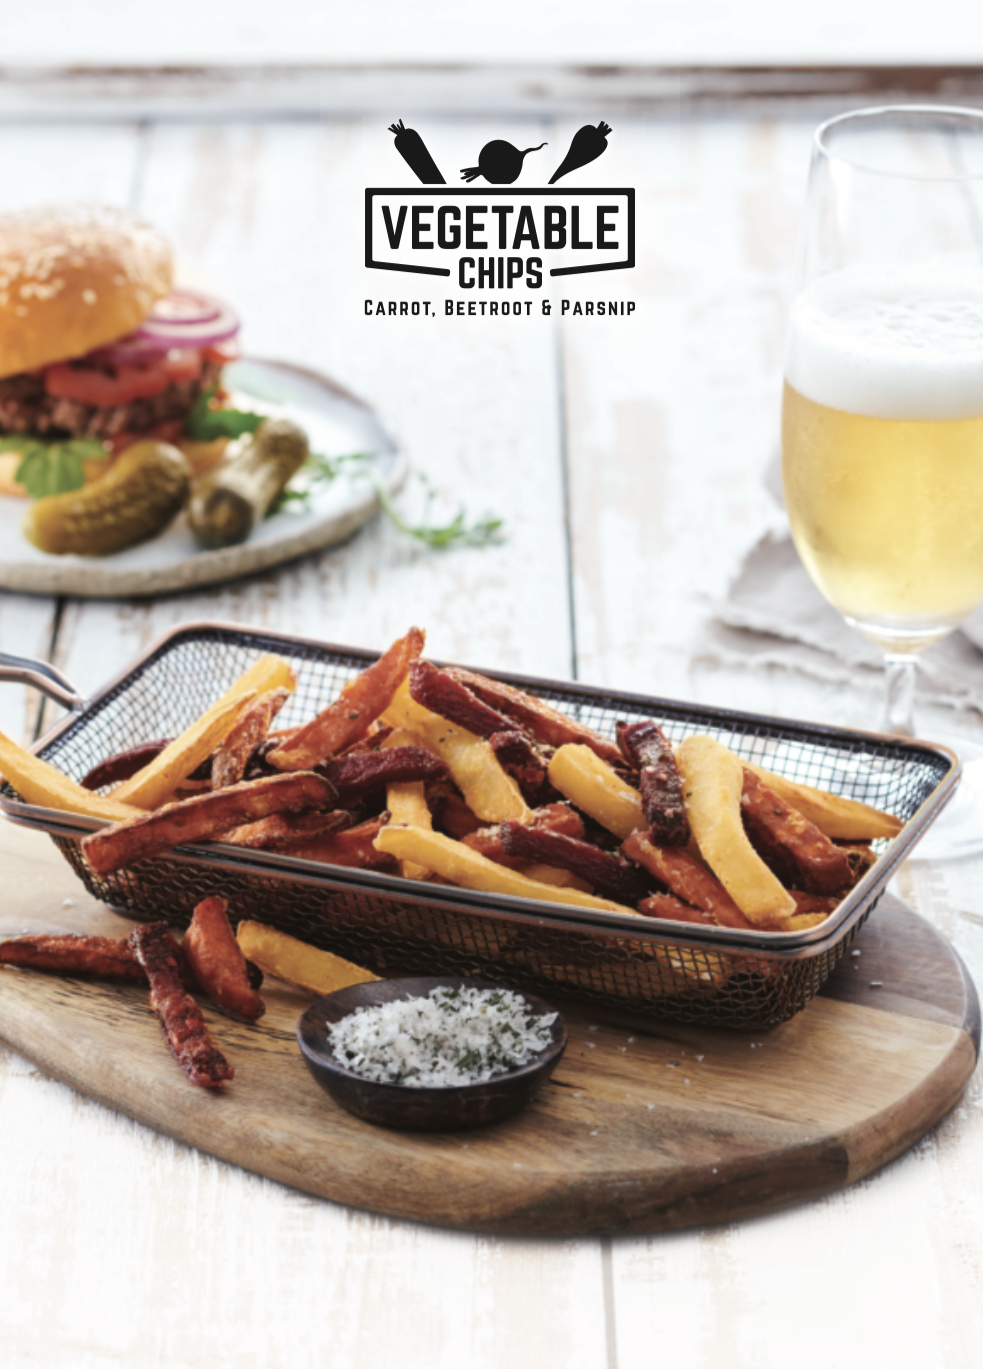 Download the Edgell Vegetable Chips Brochure -